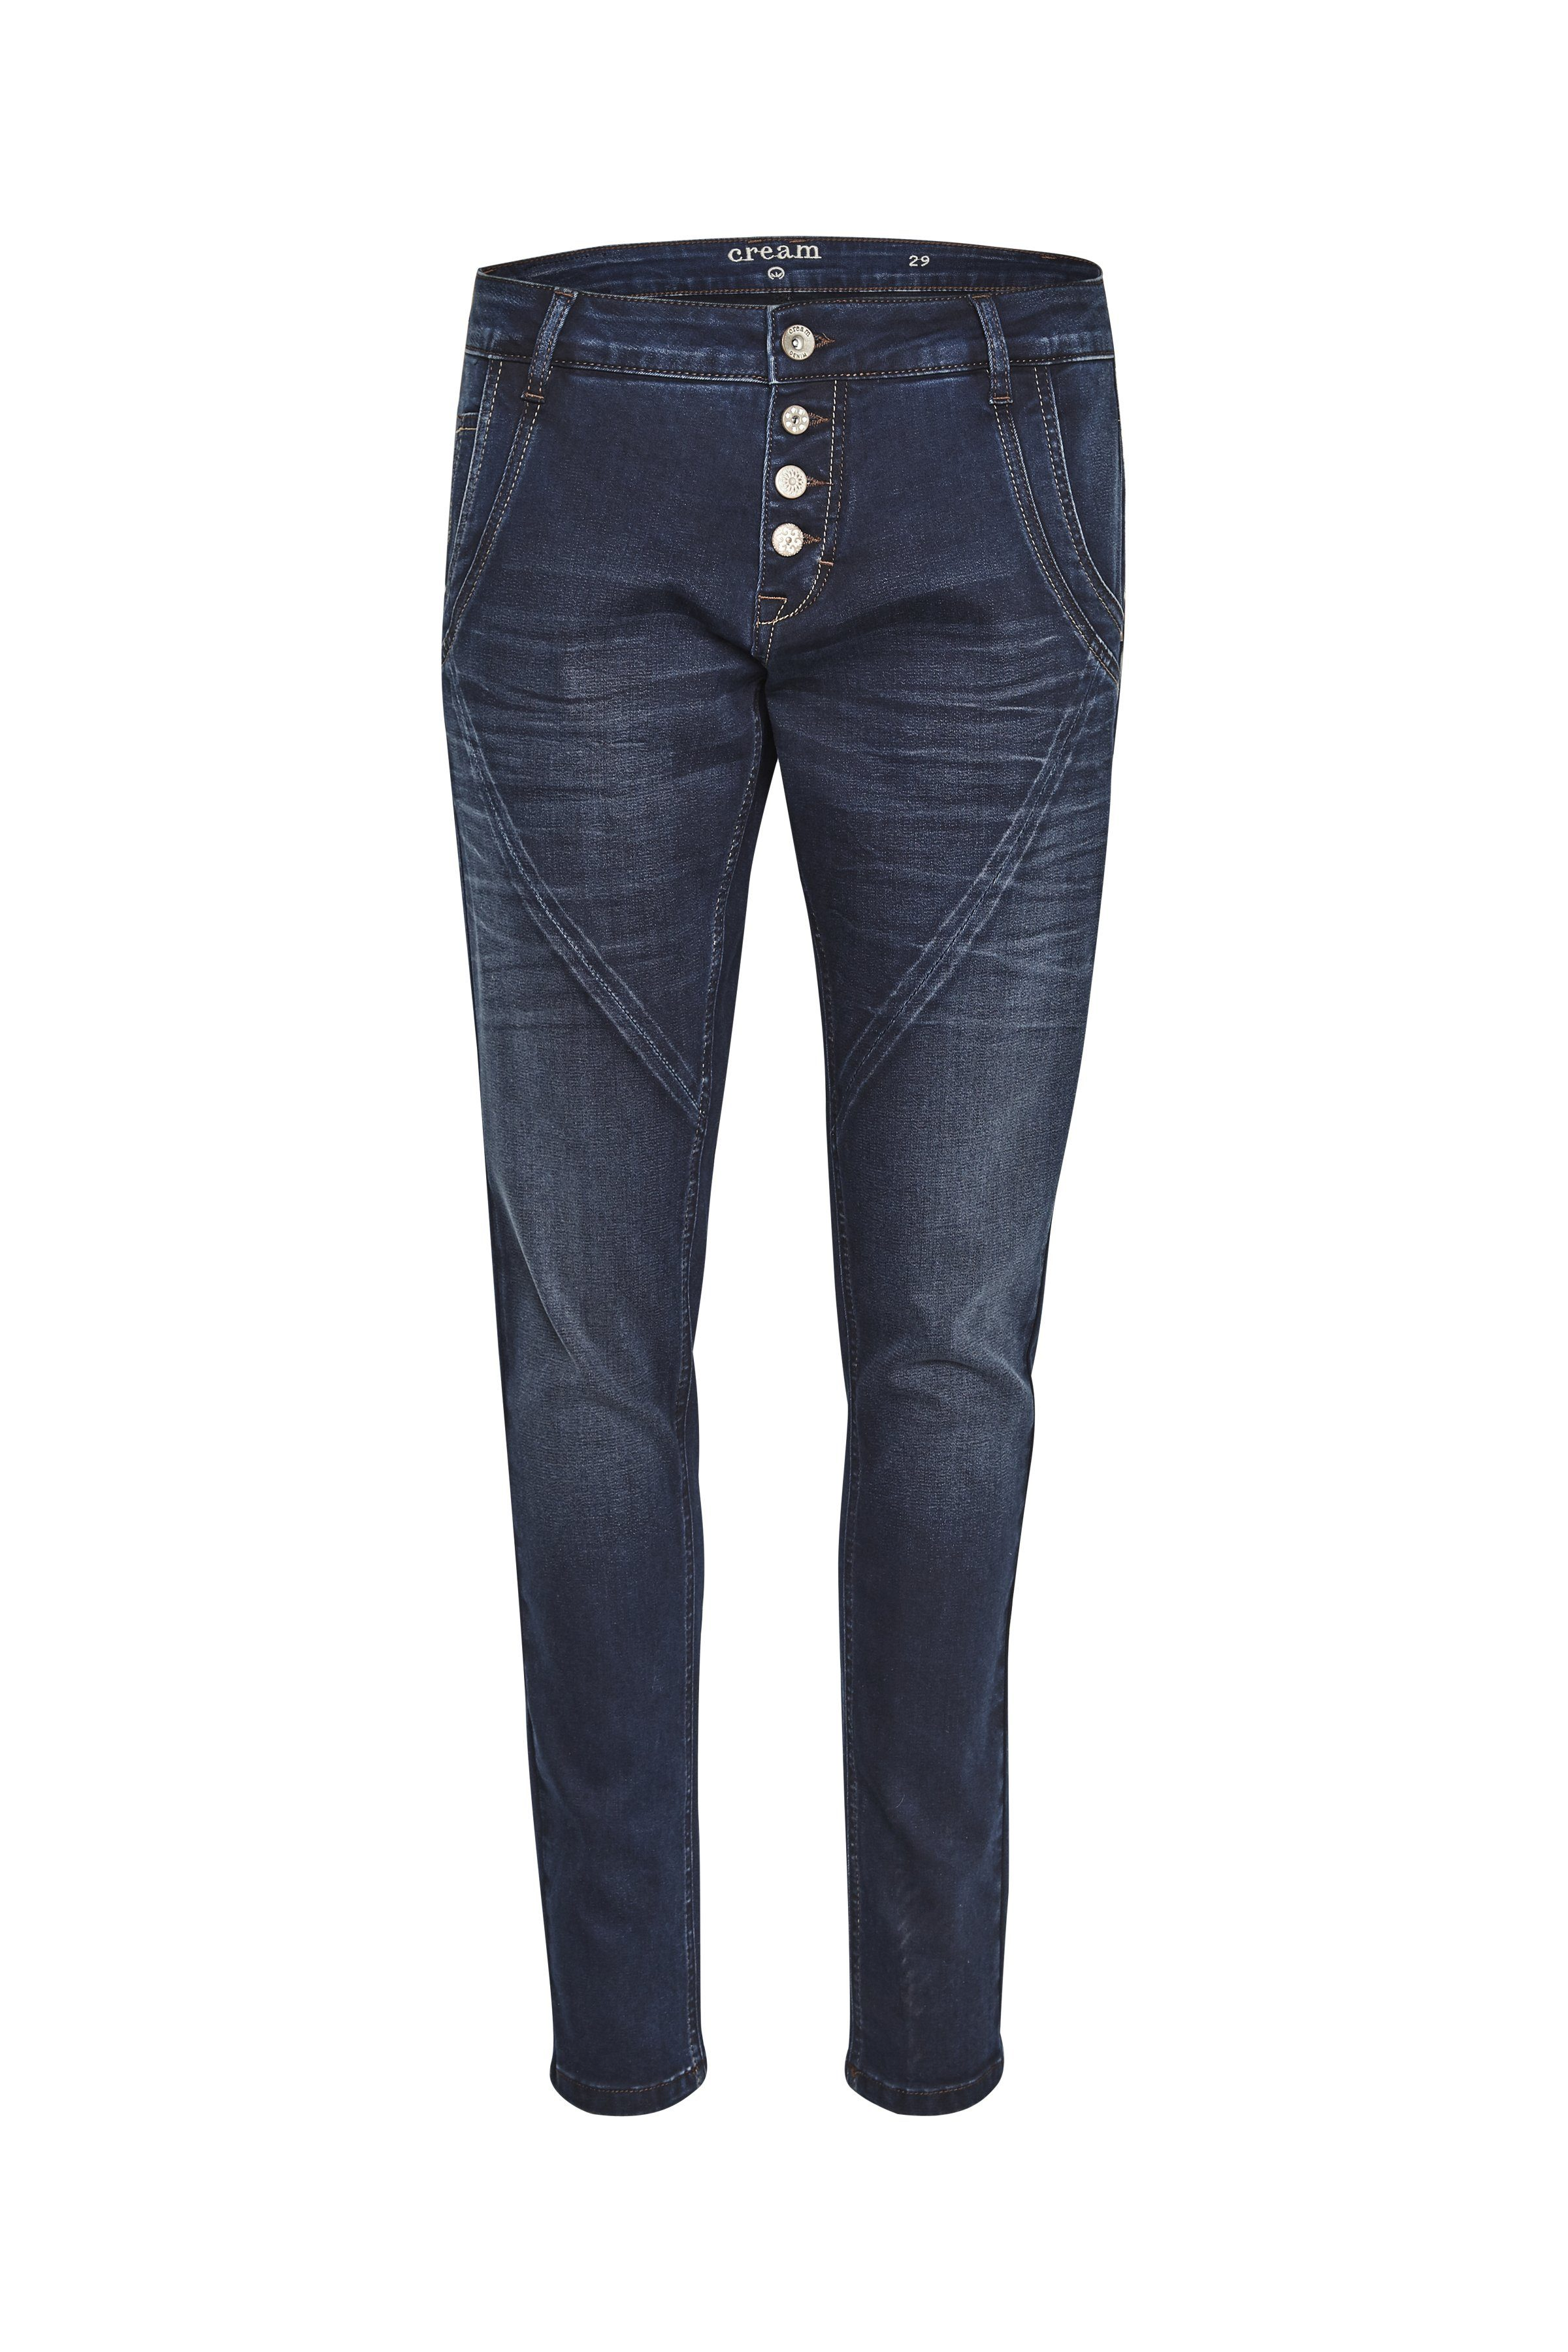 Cream Bequeme Jeans »Baiily Power Stretch«